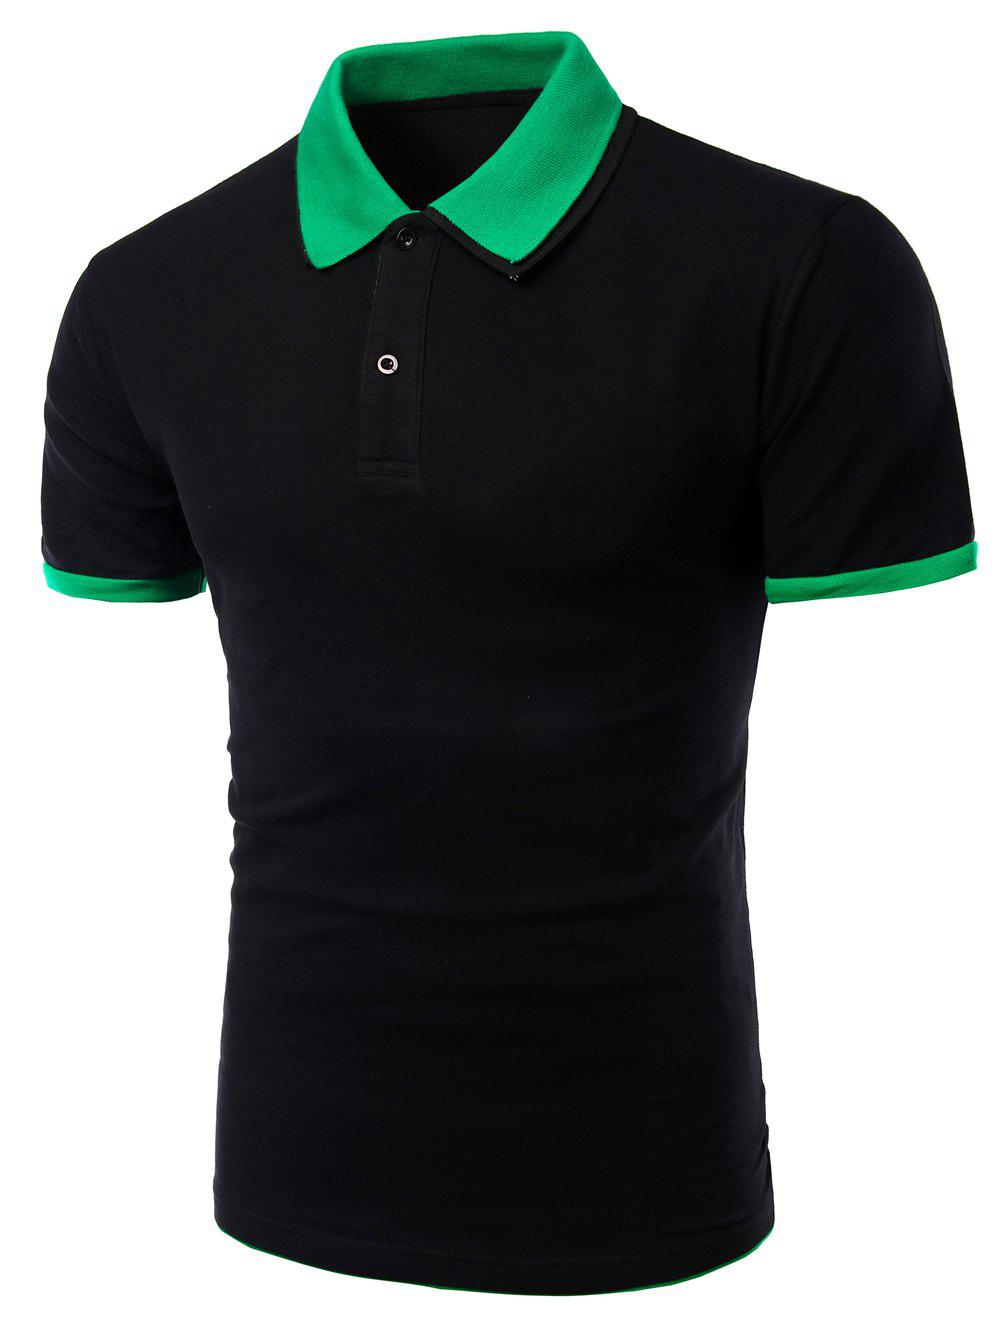 Men's Turn-down Collar Solid  Color Short Sleeves Polo T-Shirt - BLACK/GREEN L